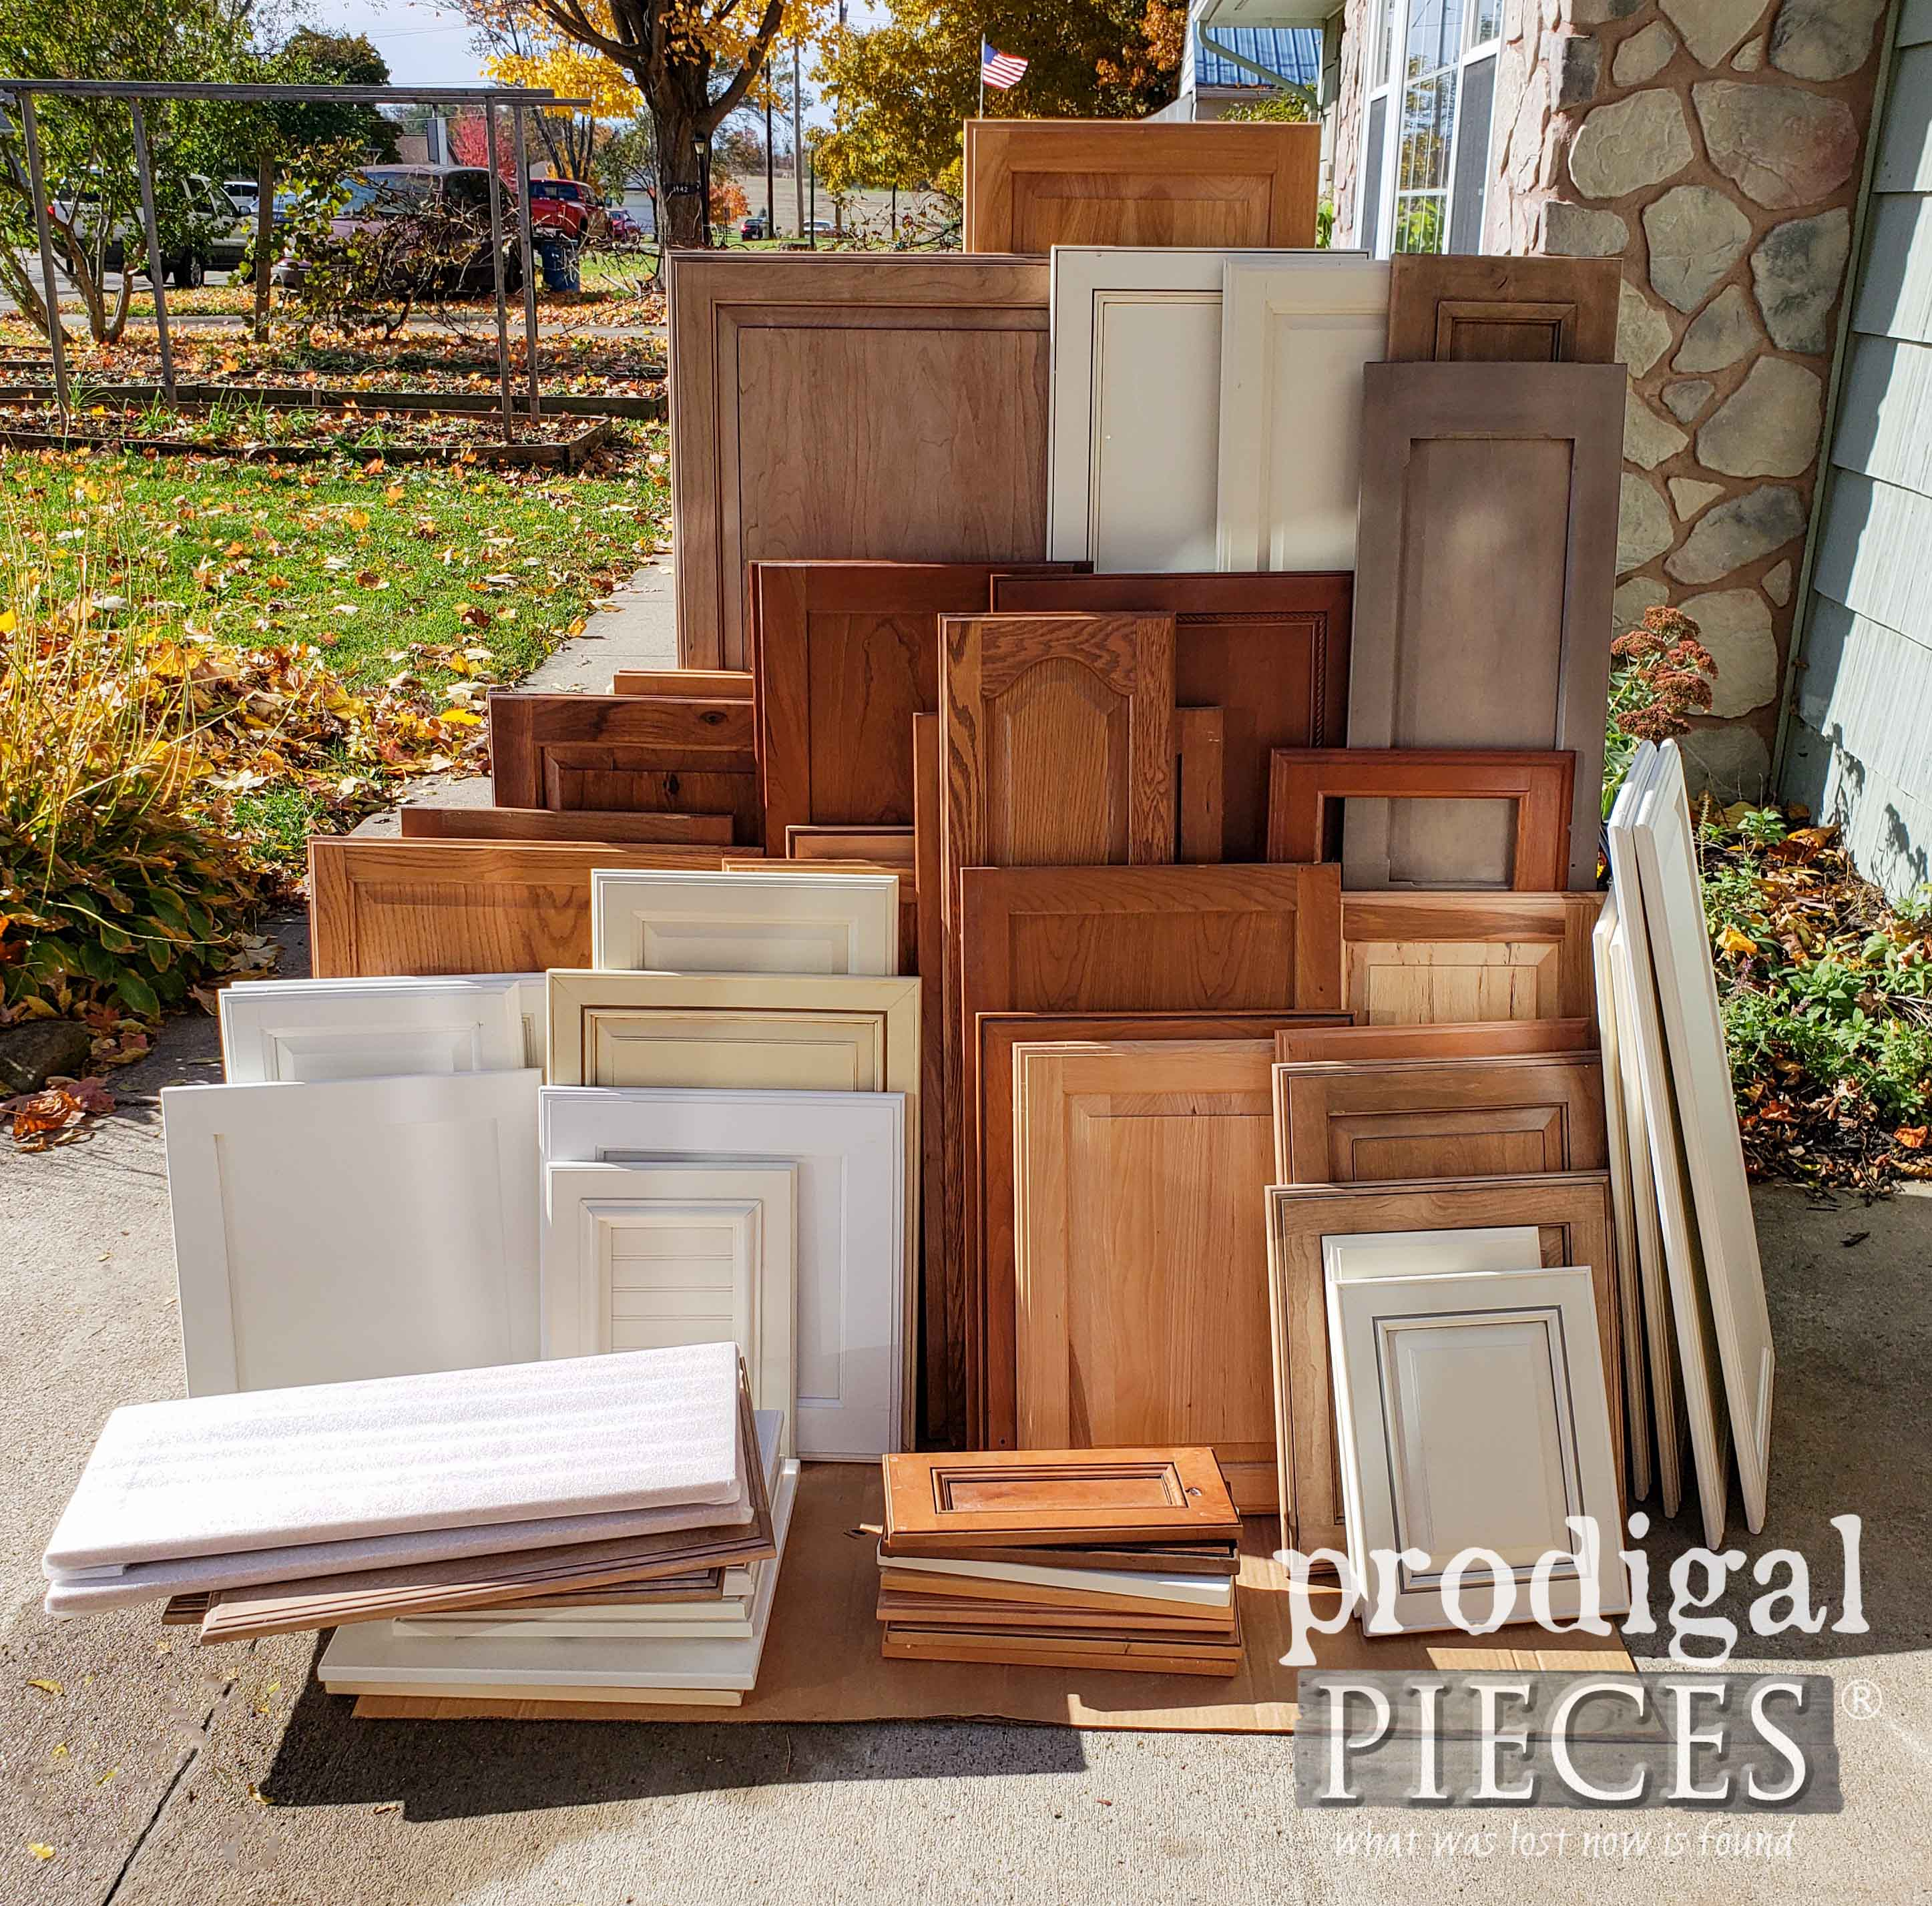 Salvaged Cupboard Door Stash for Upcycling Projects by Larissa of Prodigal Pieces | prodigalpieces.com